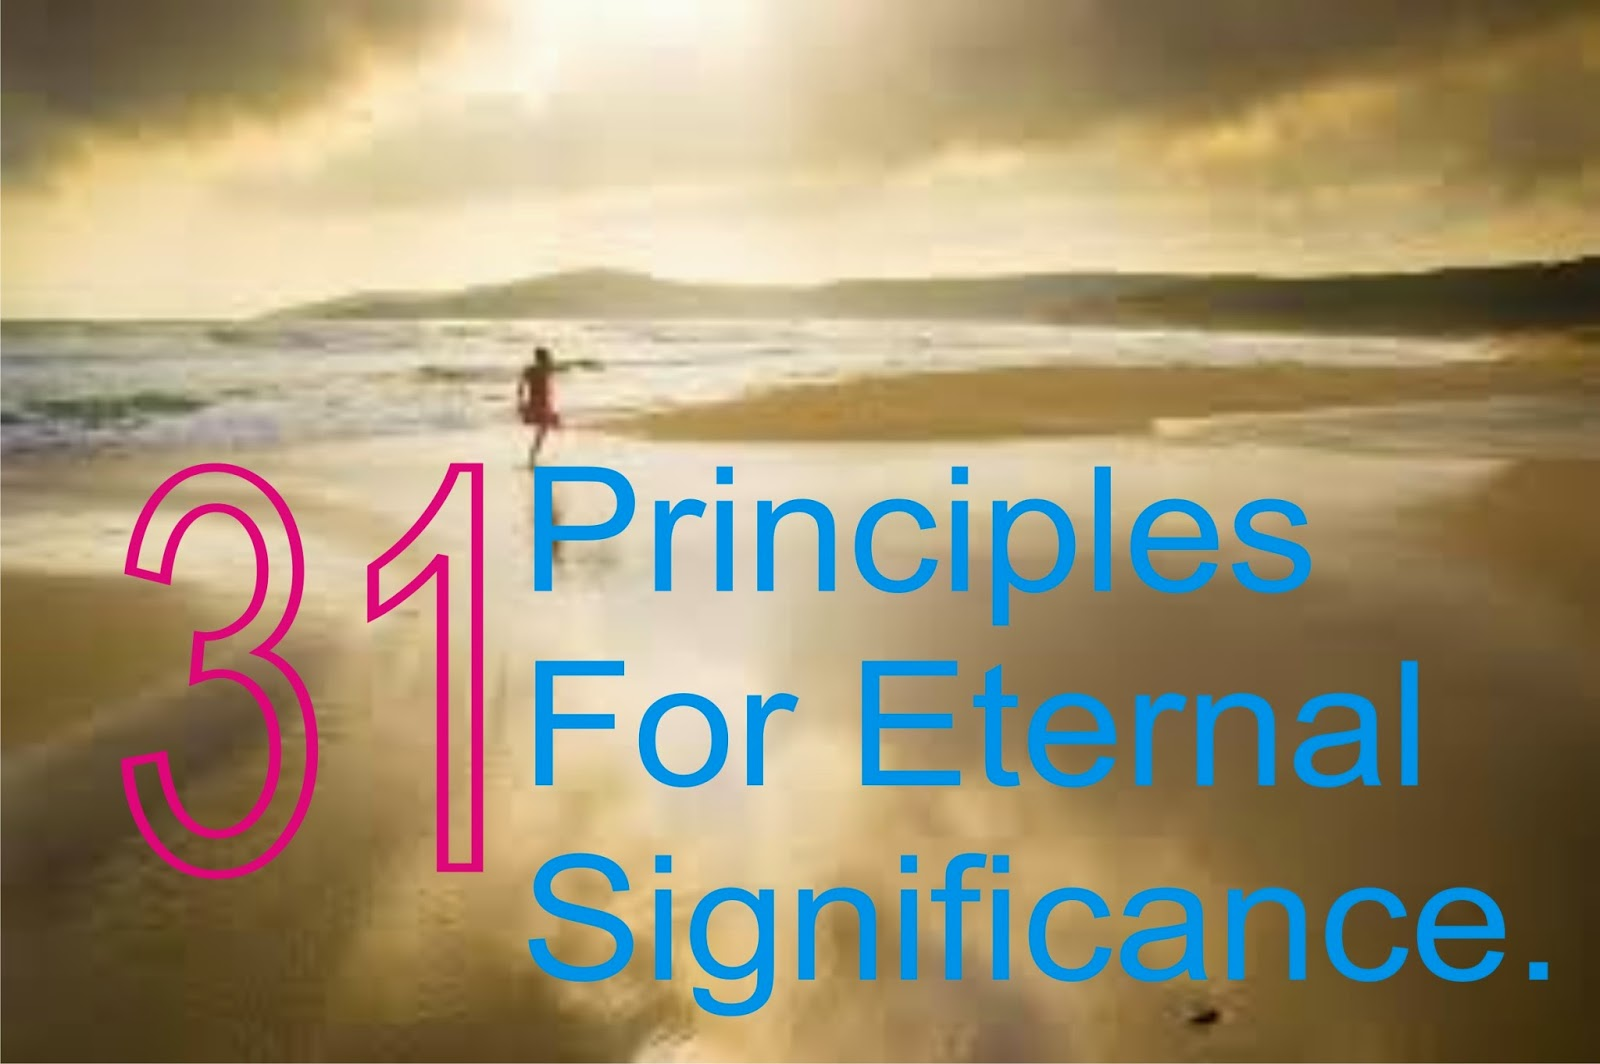 31 Principles for Eternal Significance